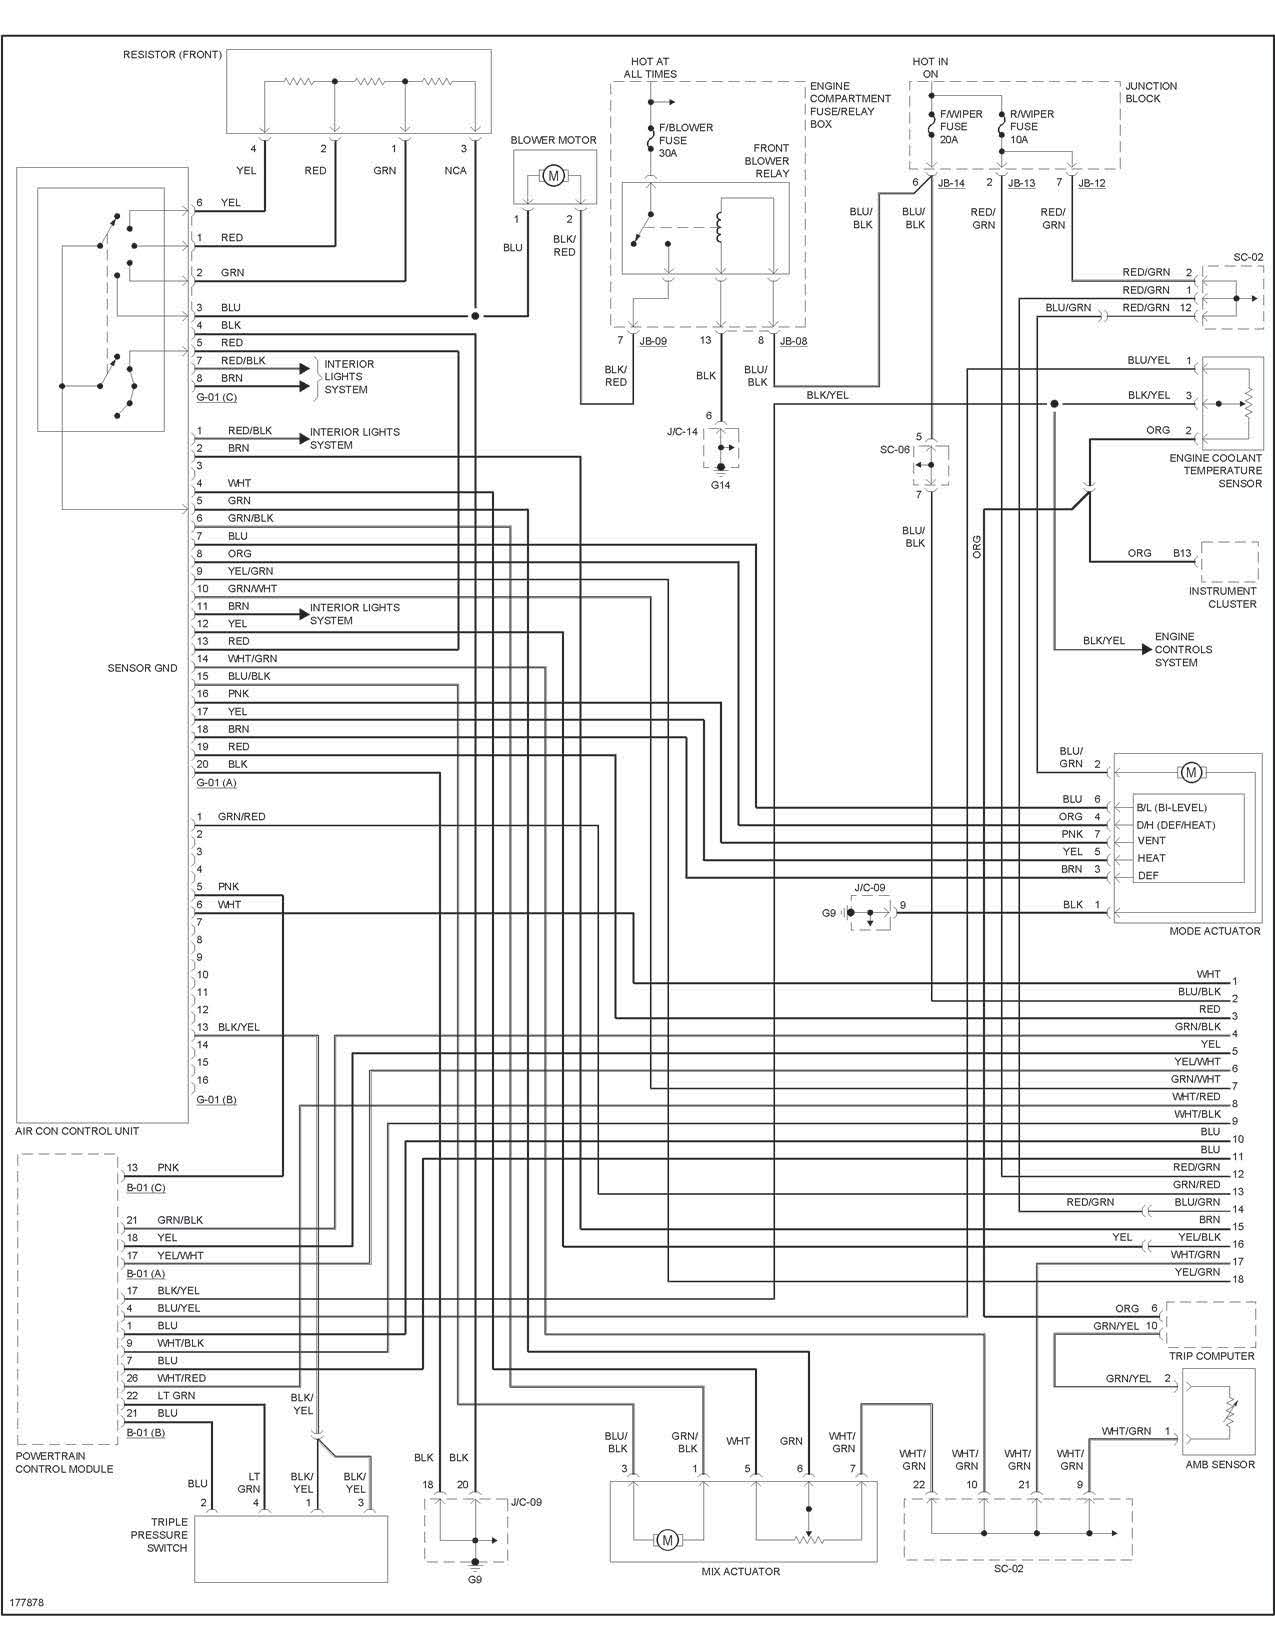 kia carens electrical wiring diagram kia pride electrical wiring diagram 03 sedona, ac clutch not engaging. the system has a ...